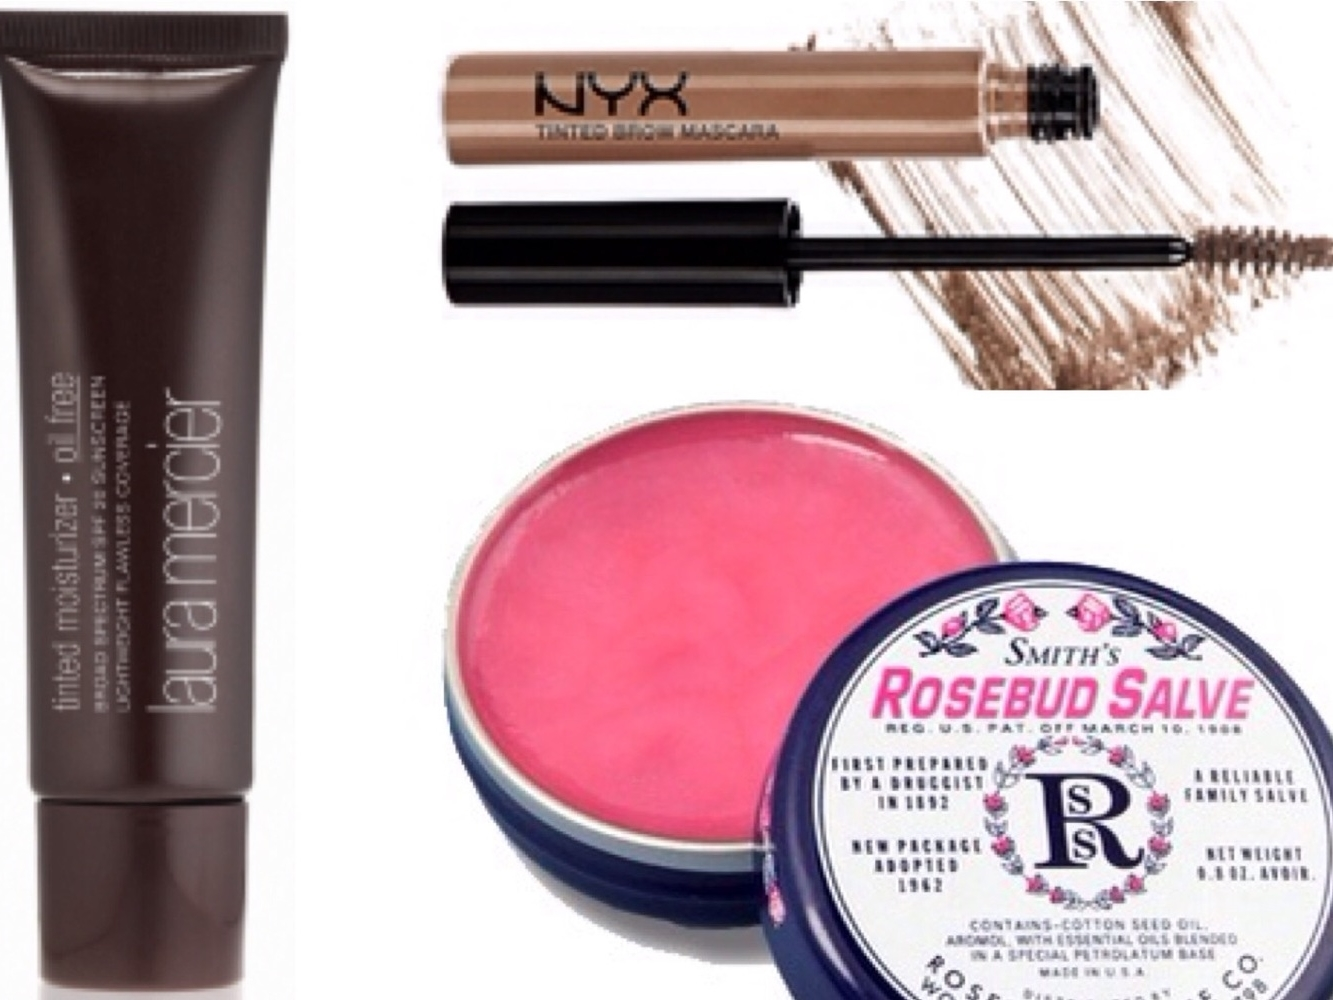 Laura Mercier Oil free tinted moisturizer, NYX Tinted Brow Mascara and Rosebud Salve.